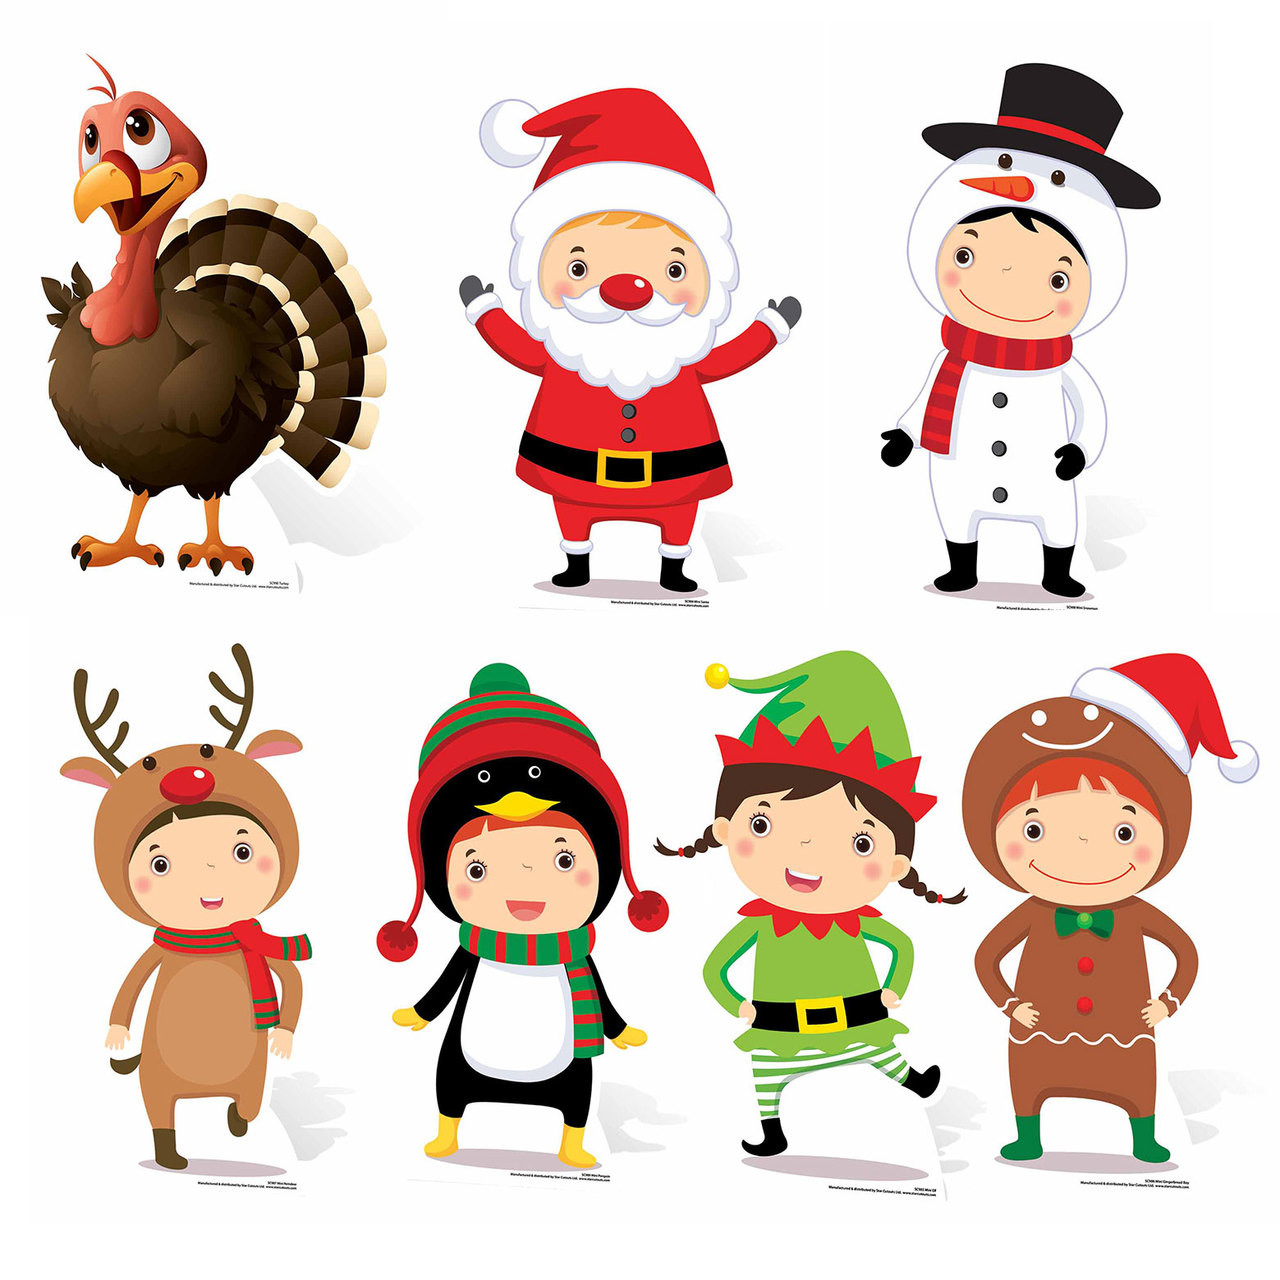 Christmas Cutouts.Mini Christmas Themed Cardboard Cutout Collection Set Of 7 Cutouts